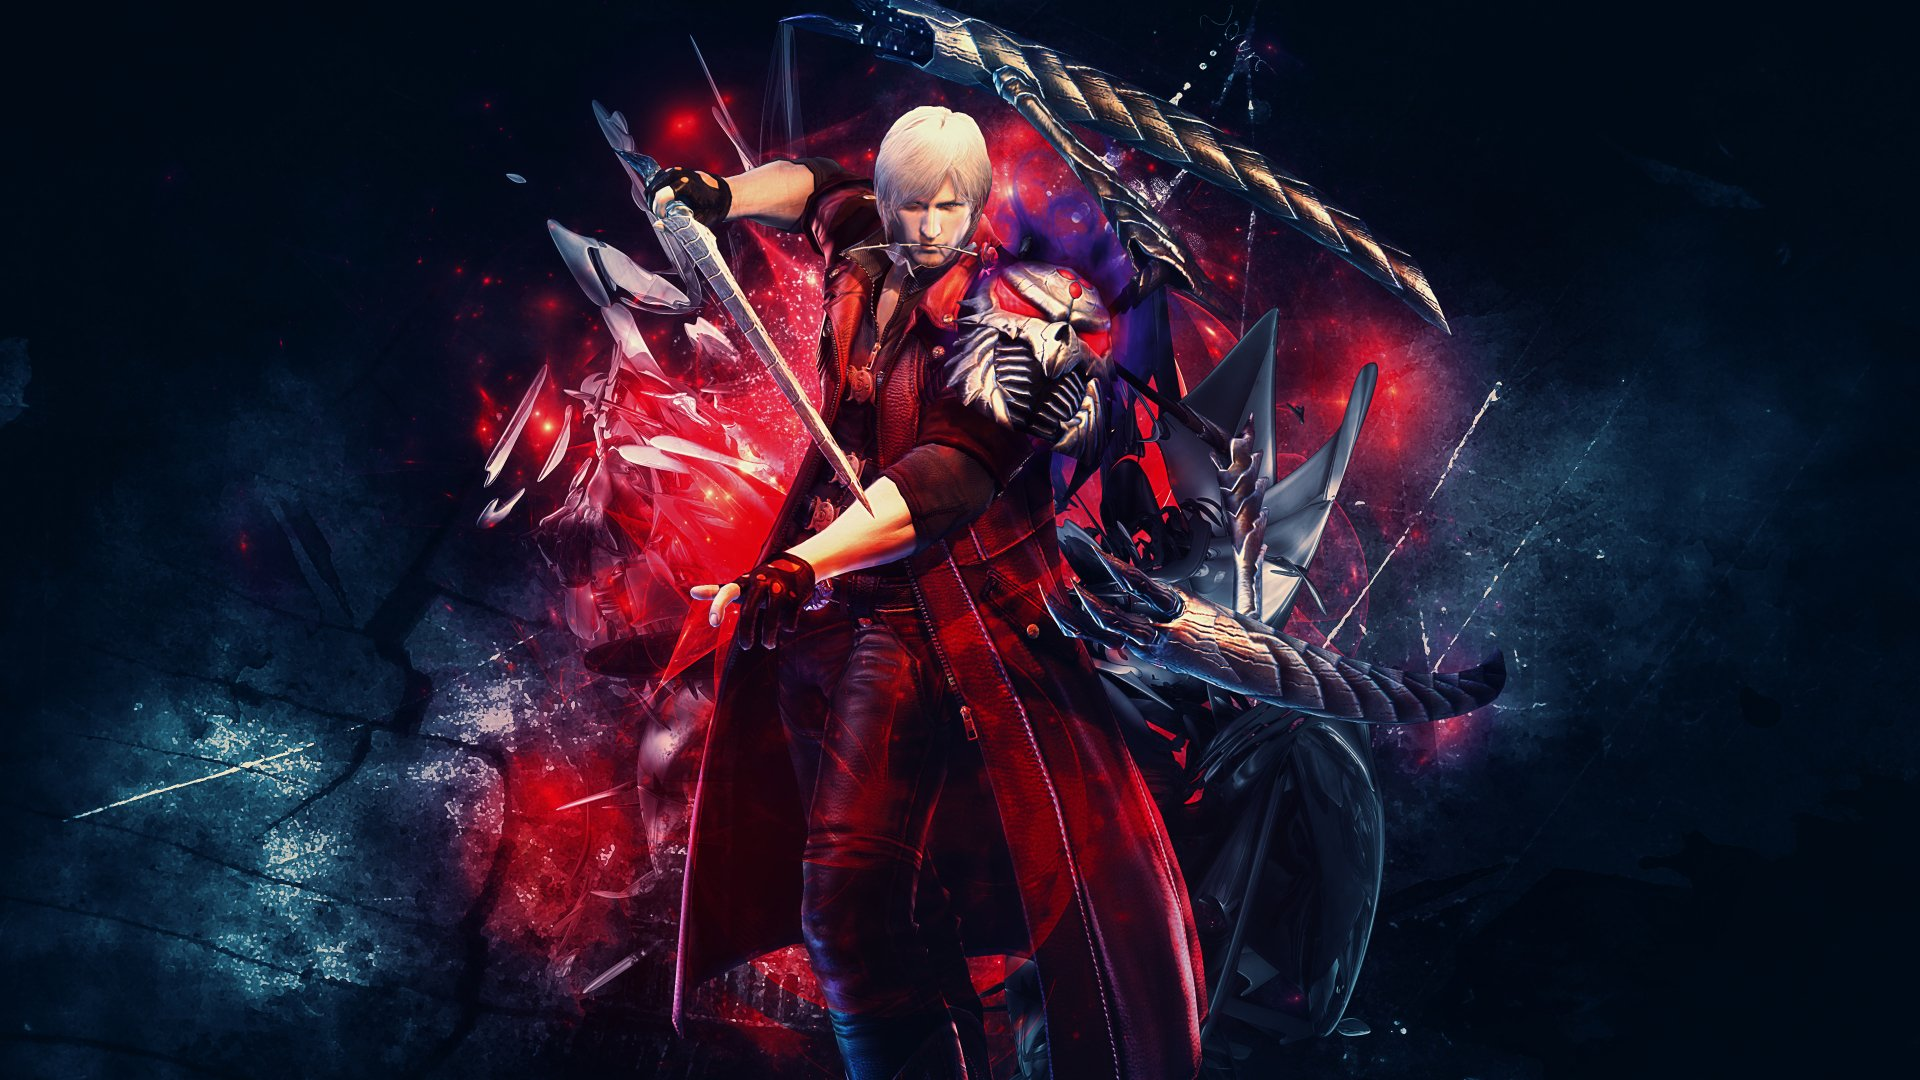 Devil may cry 4 4k ultra hd wallpaper background image 3840x2160 id 914667 wallpaper abyss - Devil may cry hd pics ...